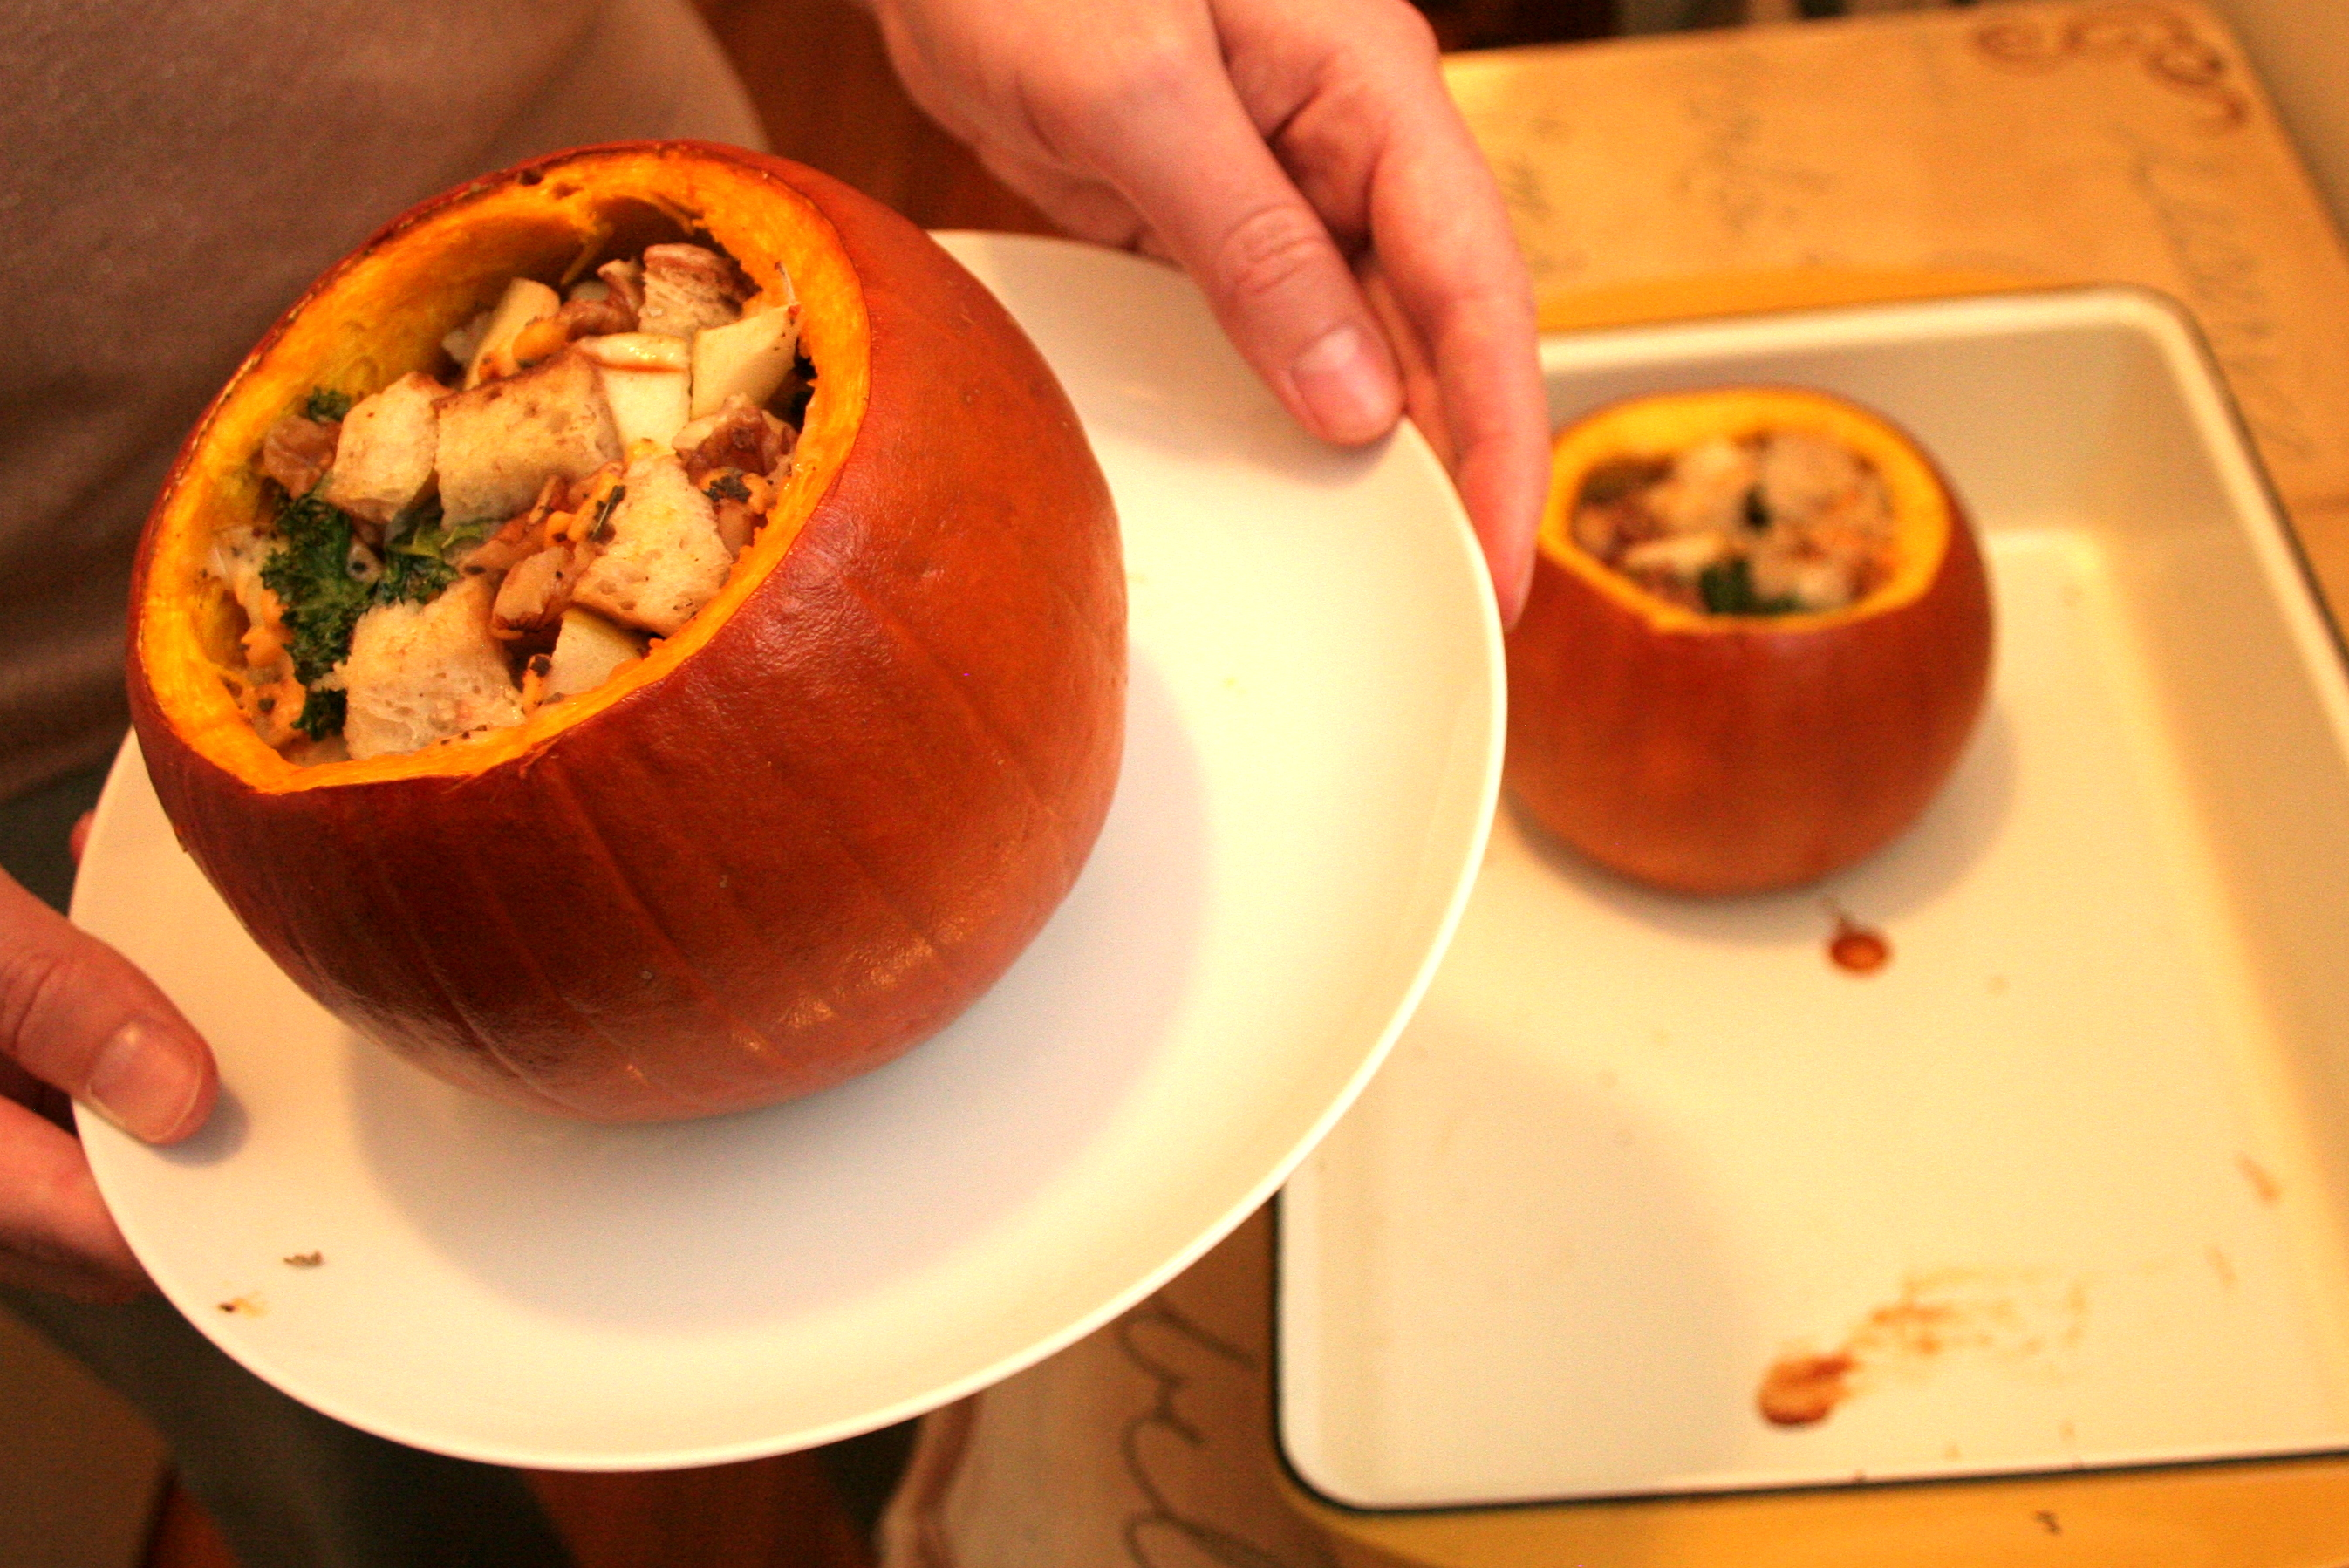 The Stuffed Pumpkin Recipe That Would Make Martha Proud - sanfranista